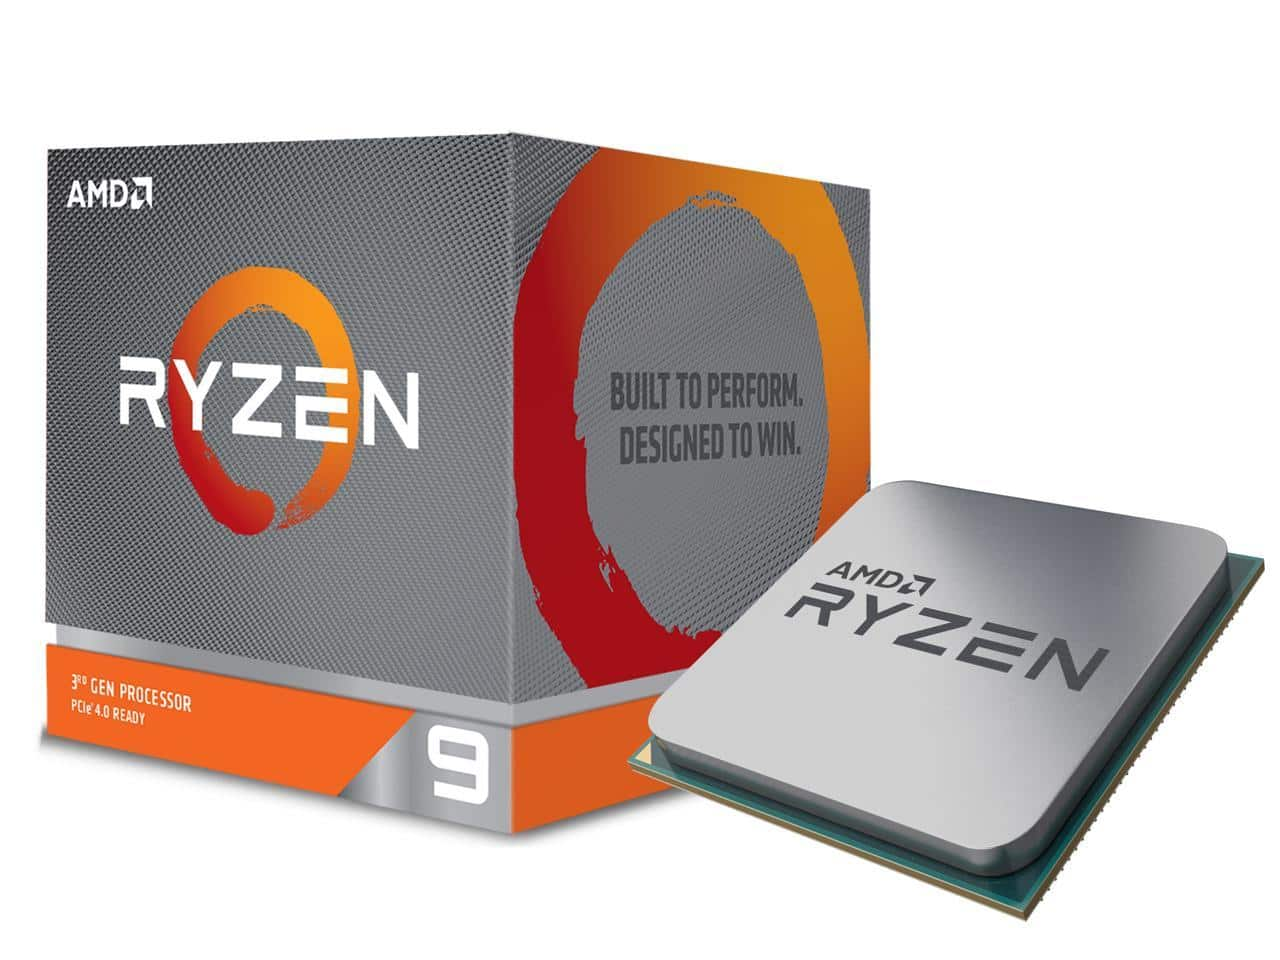 Amd Ryzen 9 3900x 12 Core 3 8ghz Am4 Desktop Cpu Assassin S Creed Valhalla